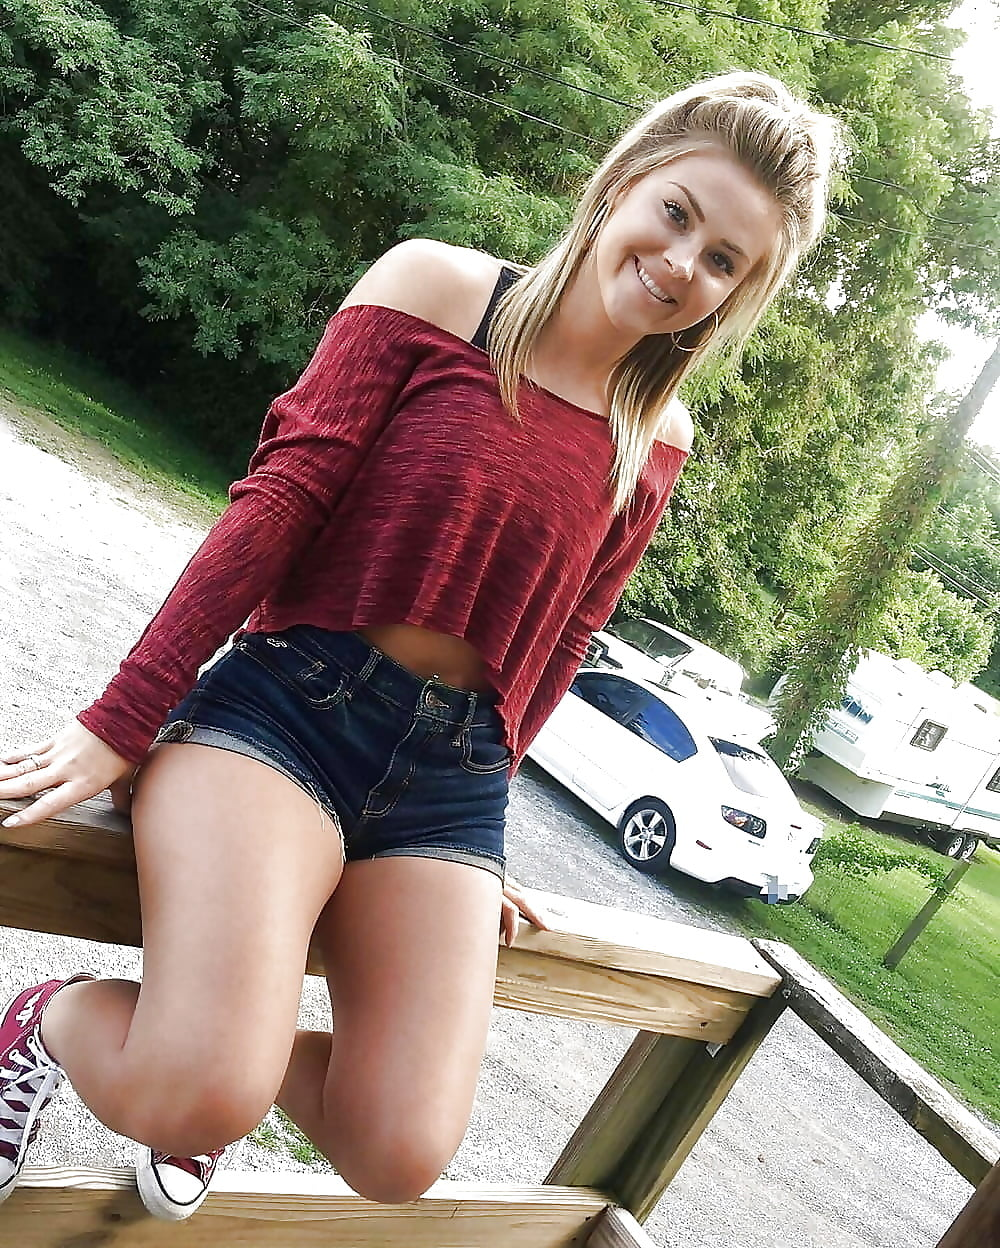 cute-young-teen-pussy-filetube-wild-young-teenage-girls